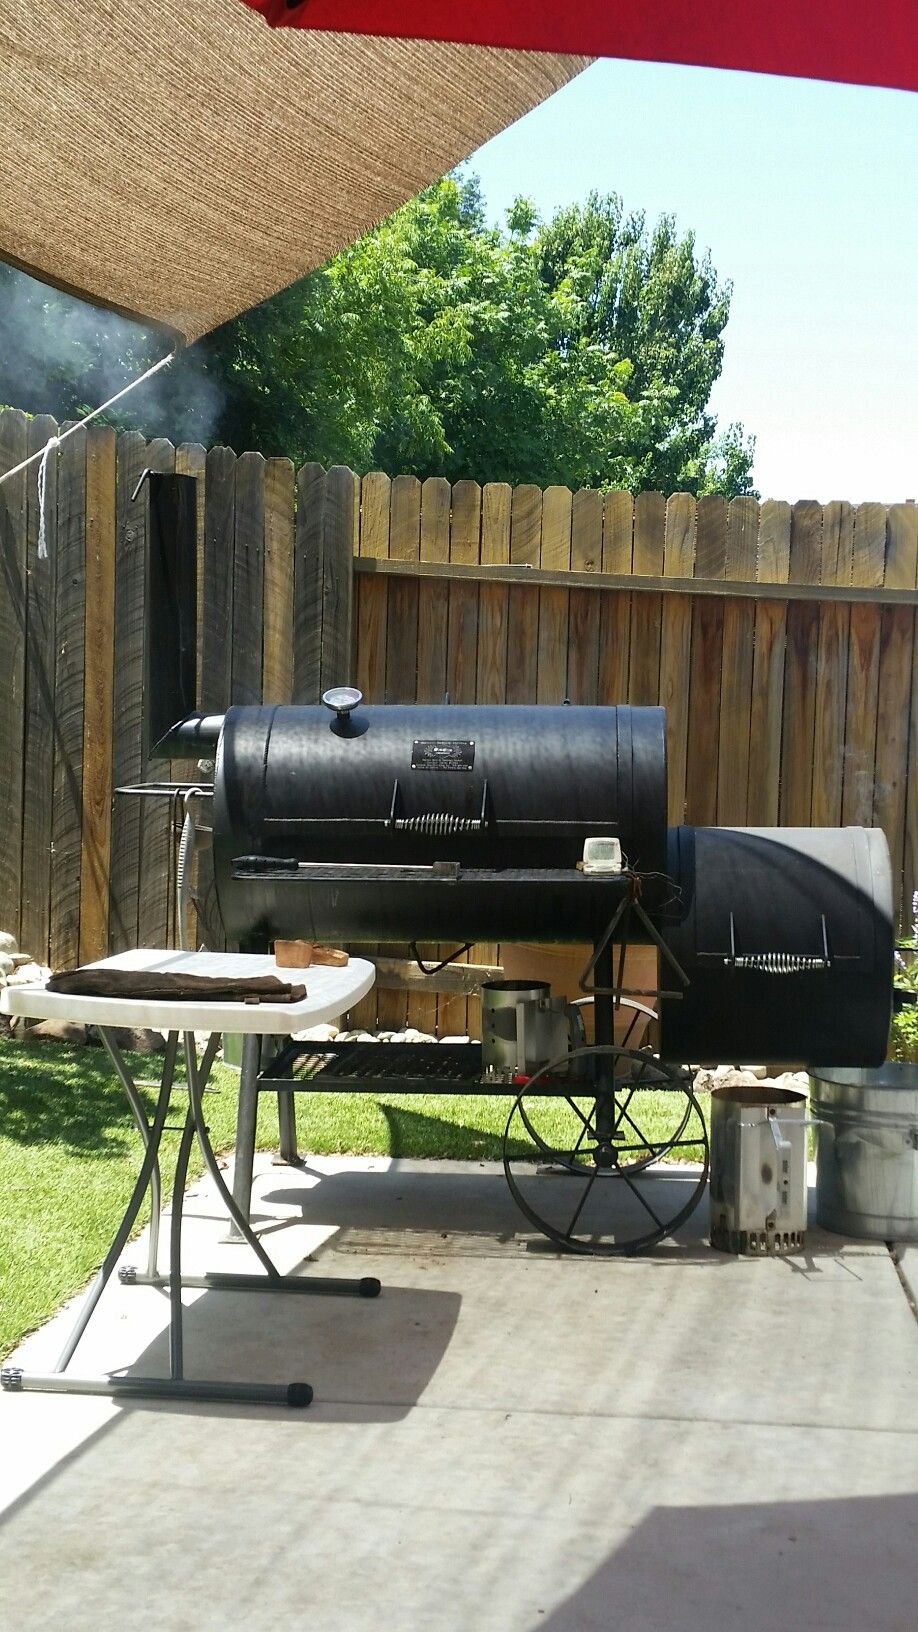 20 inch horizon smoker in action bbq pinterest grilling